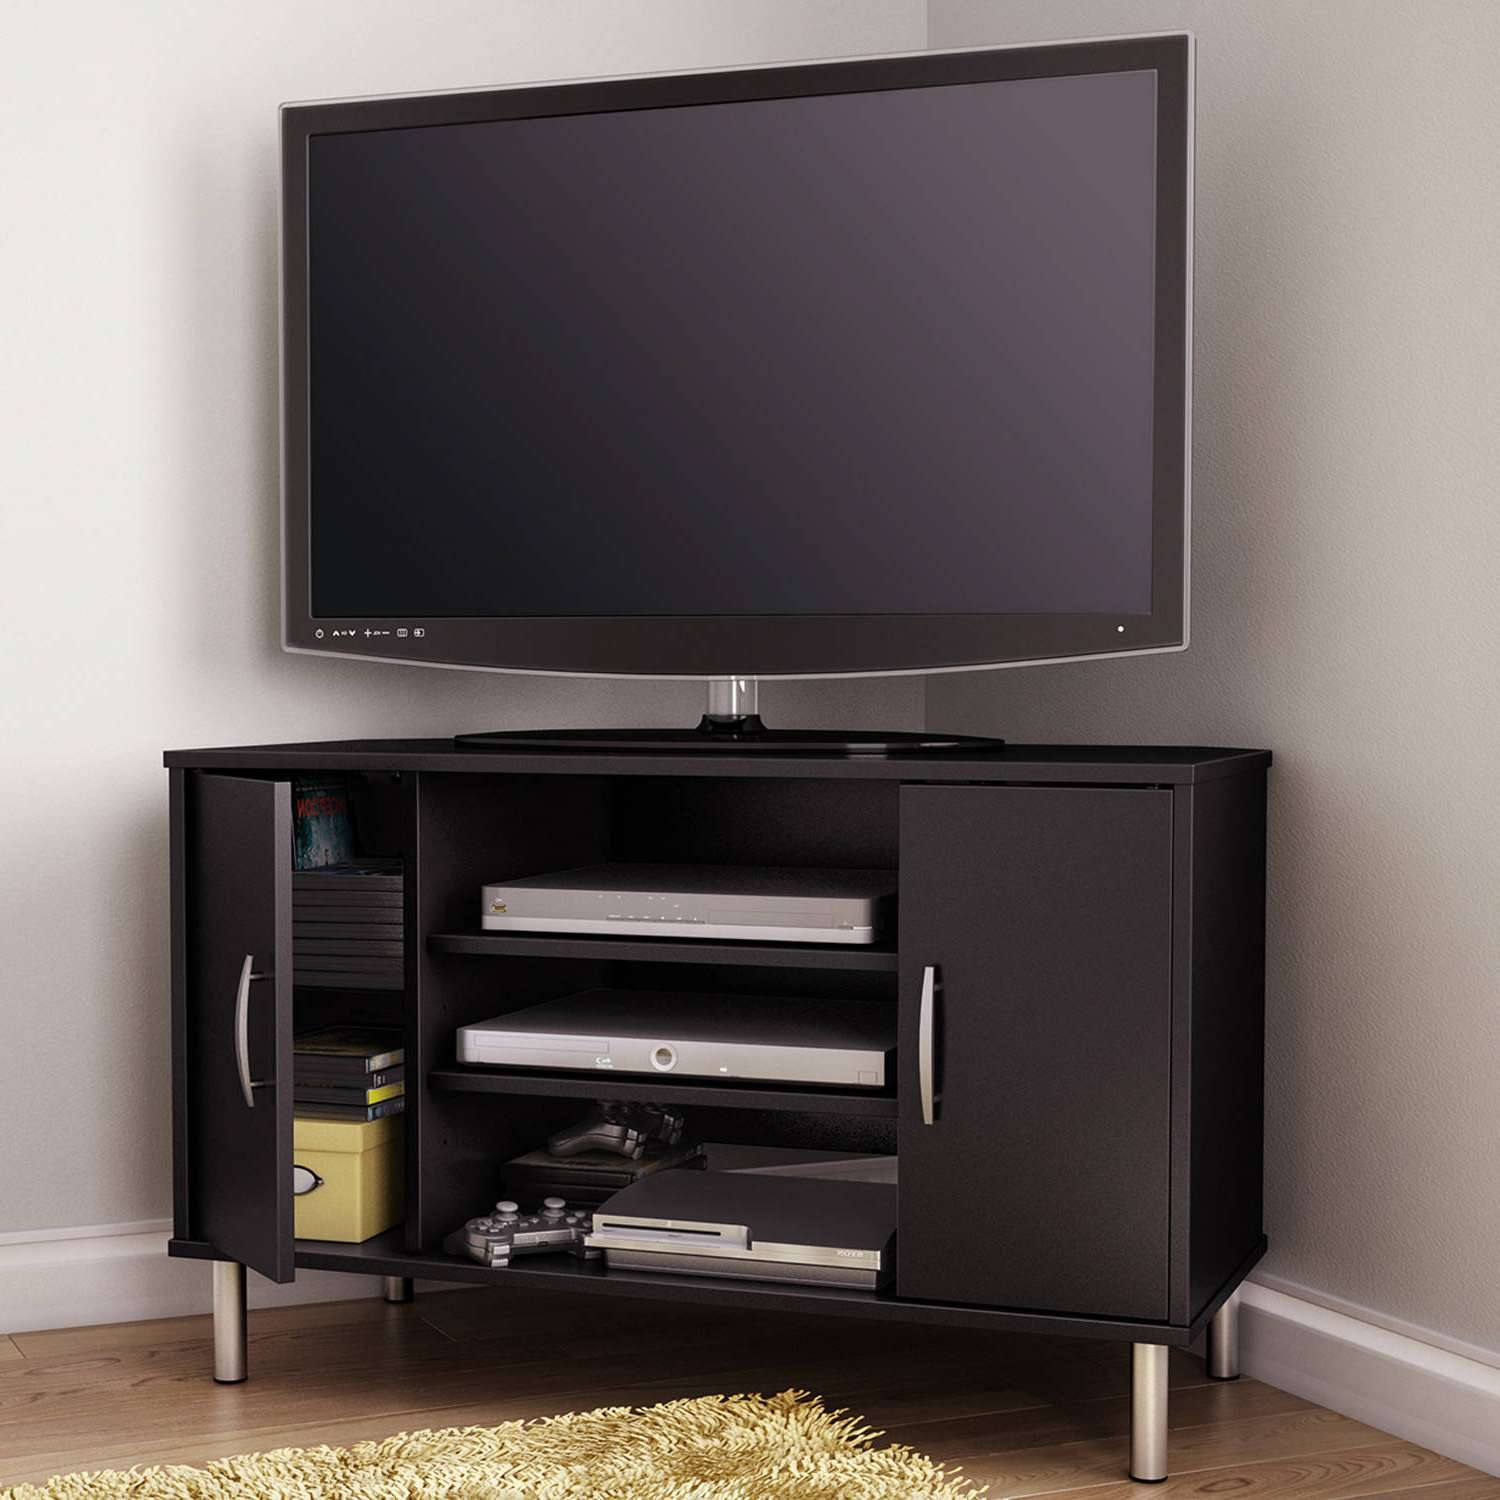 24Af711Bf819 1 Furnitures Corner Flat Screen Tv Stand South Shore For Corner Tv Stands For Flat Screen (View 1 of 15)